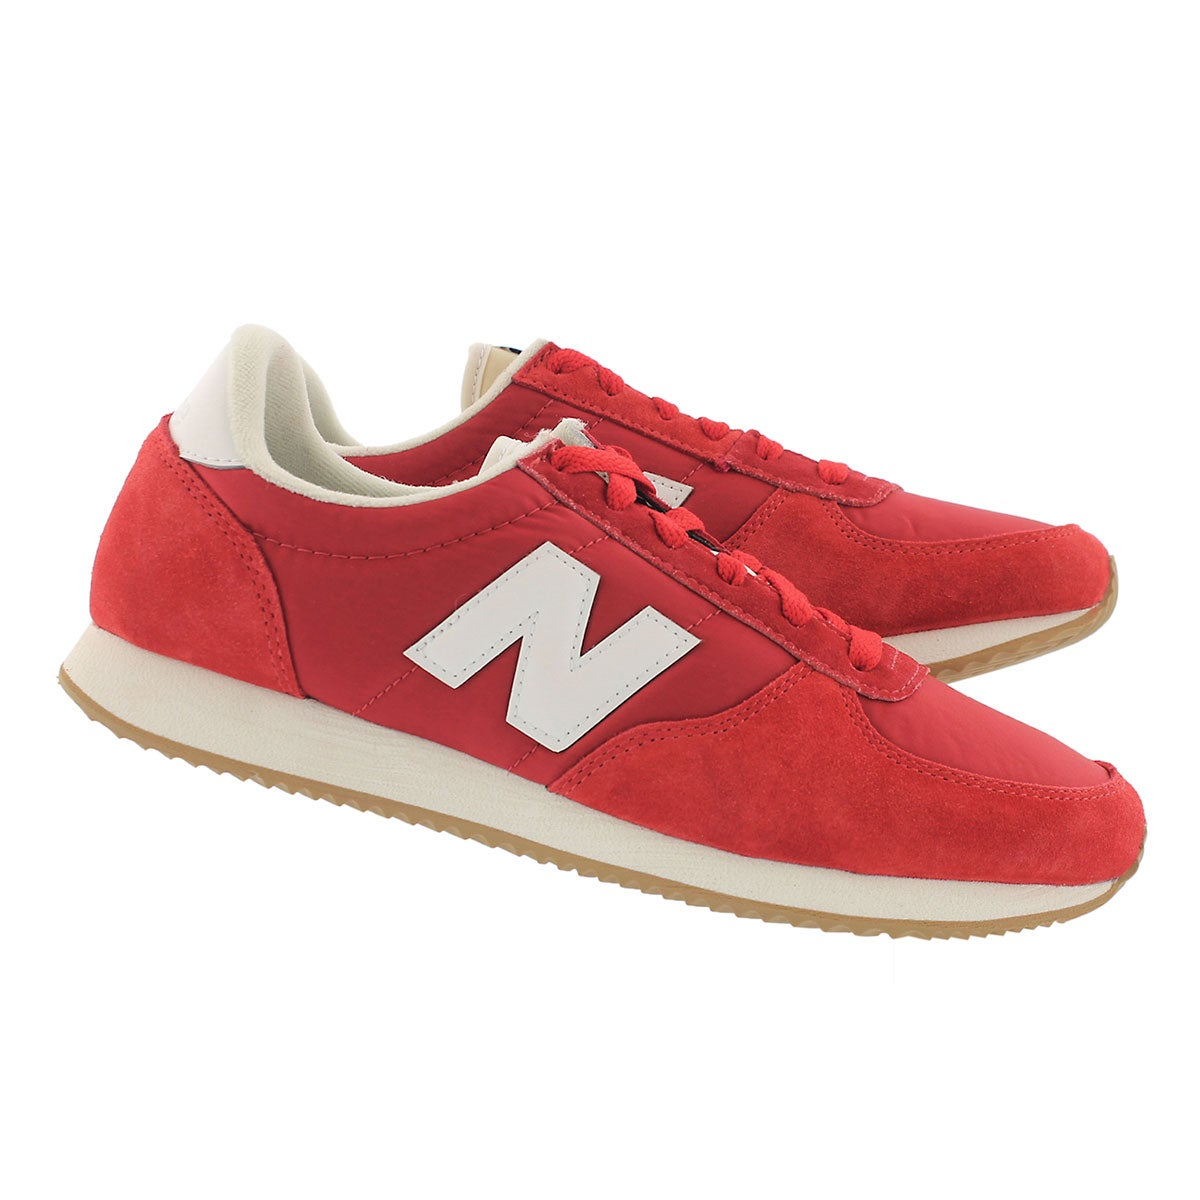 Mns 220 red/white lace up sneaker